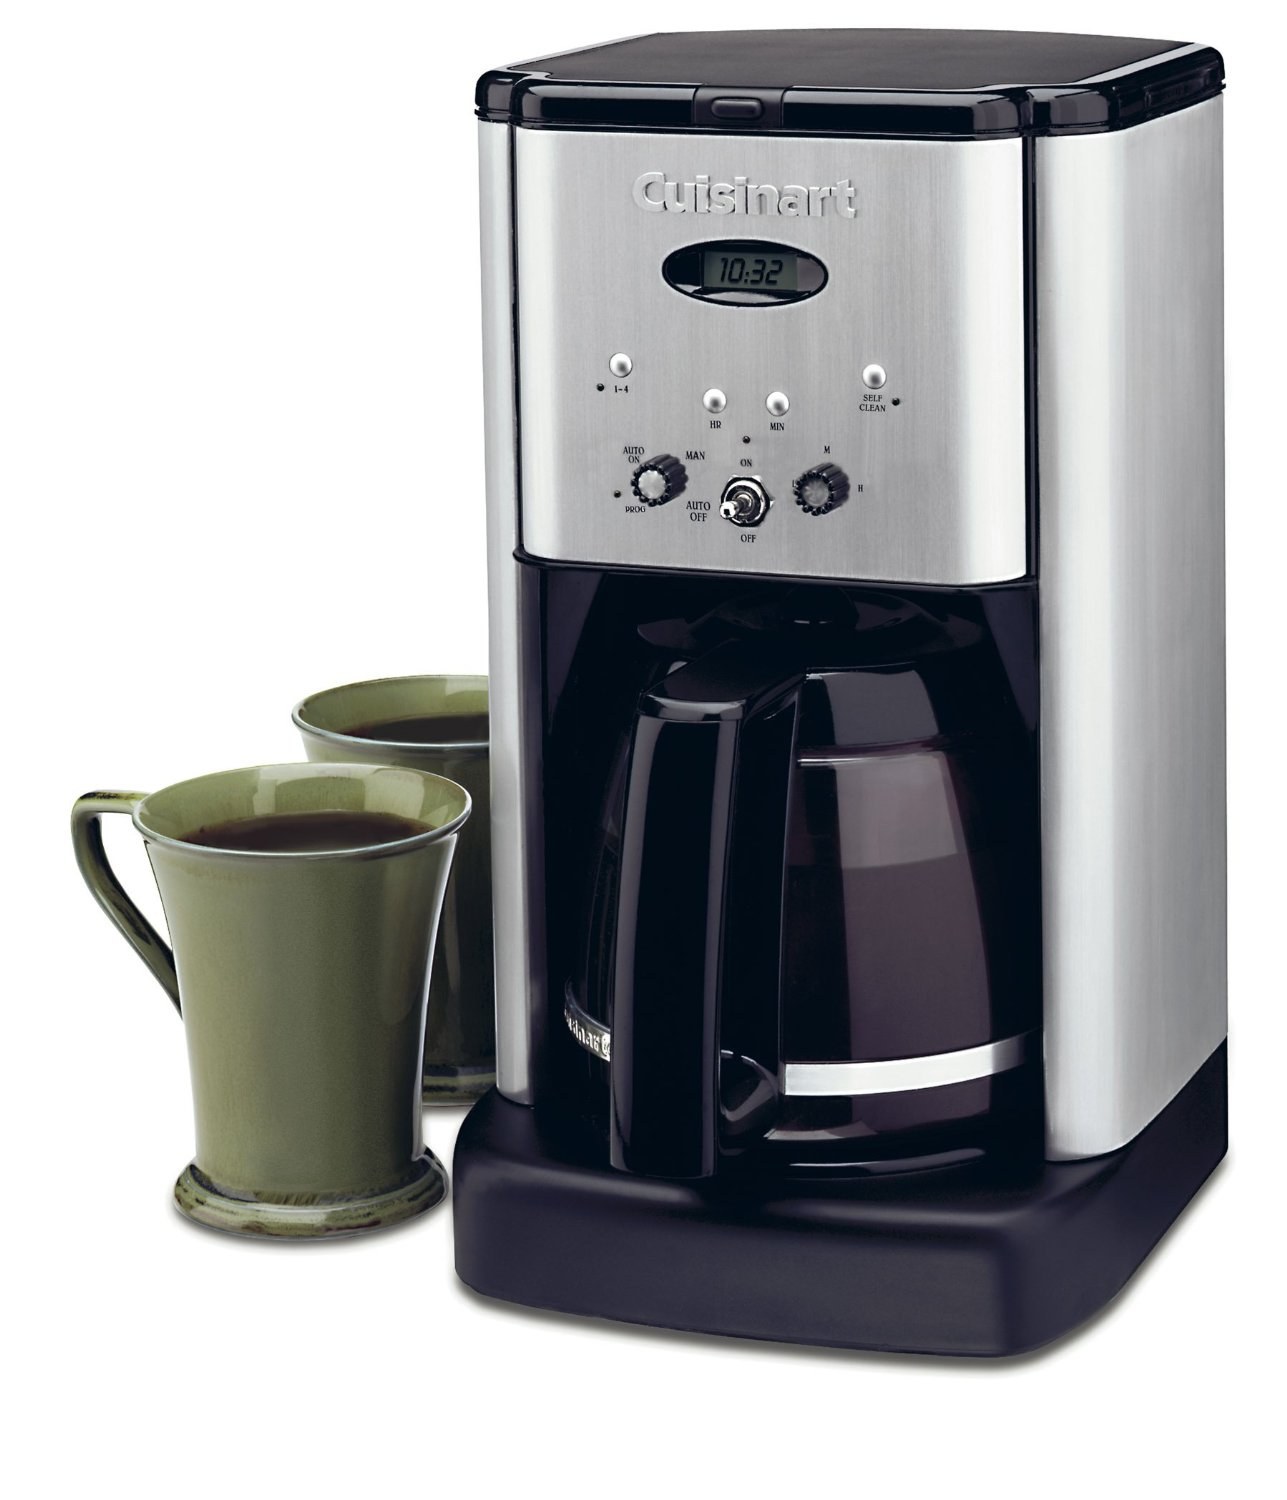 Coffee Maker Coffee Recipe : Registry Vote: Cuisinart or Keurig Coffee Maker? SimpleRegistry